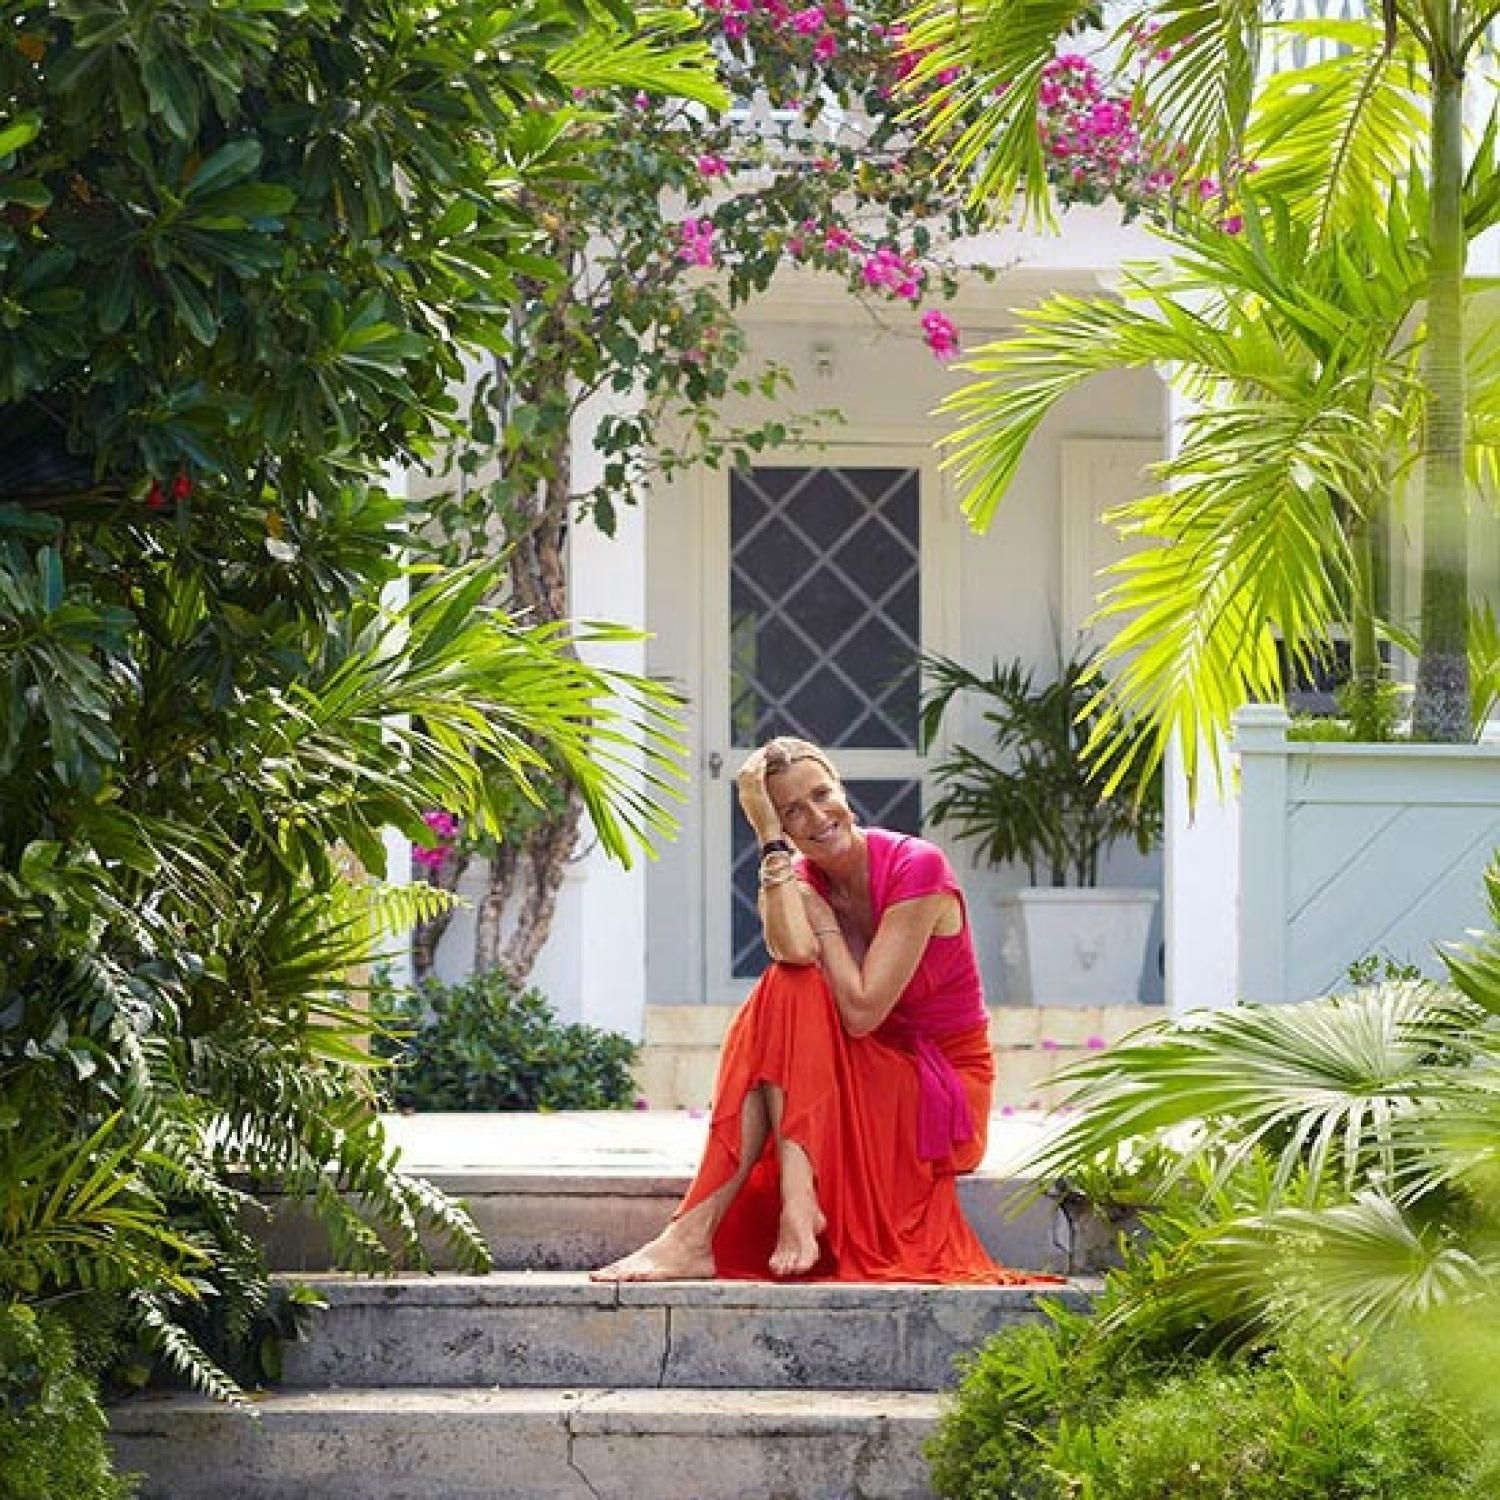 Model, Designer India Hicks' Home In The Bahamas In 2019